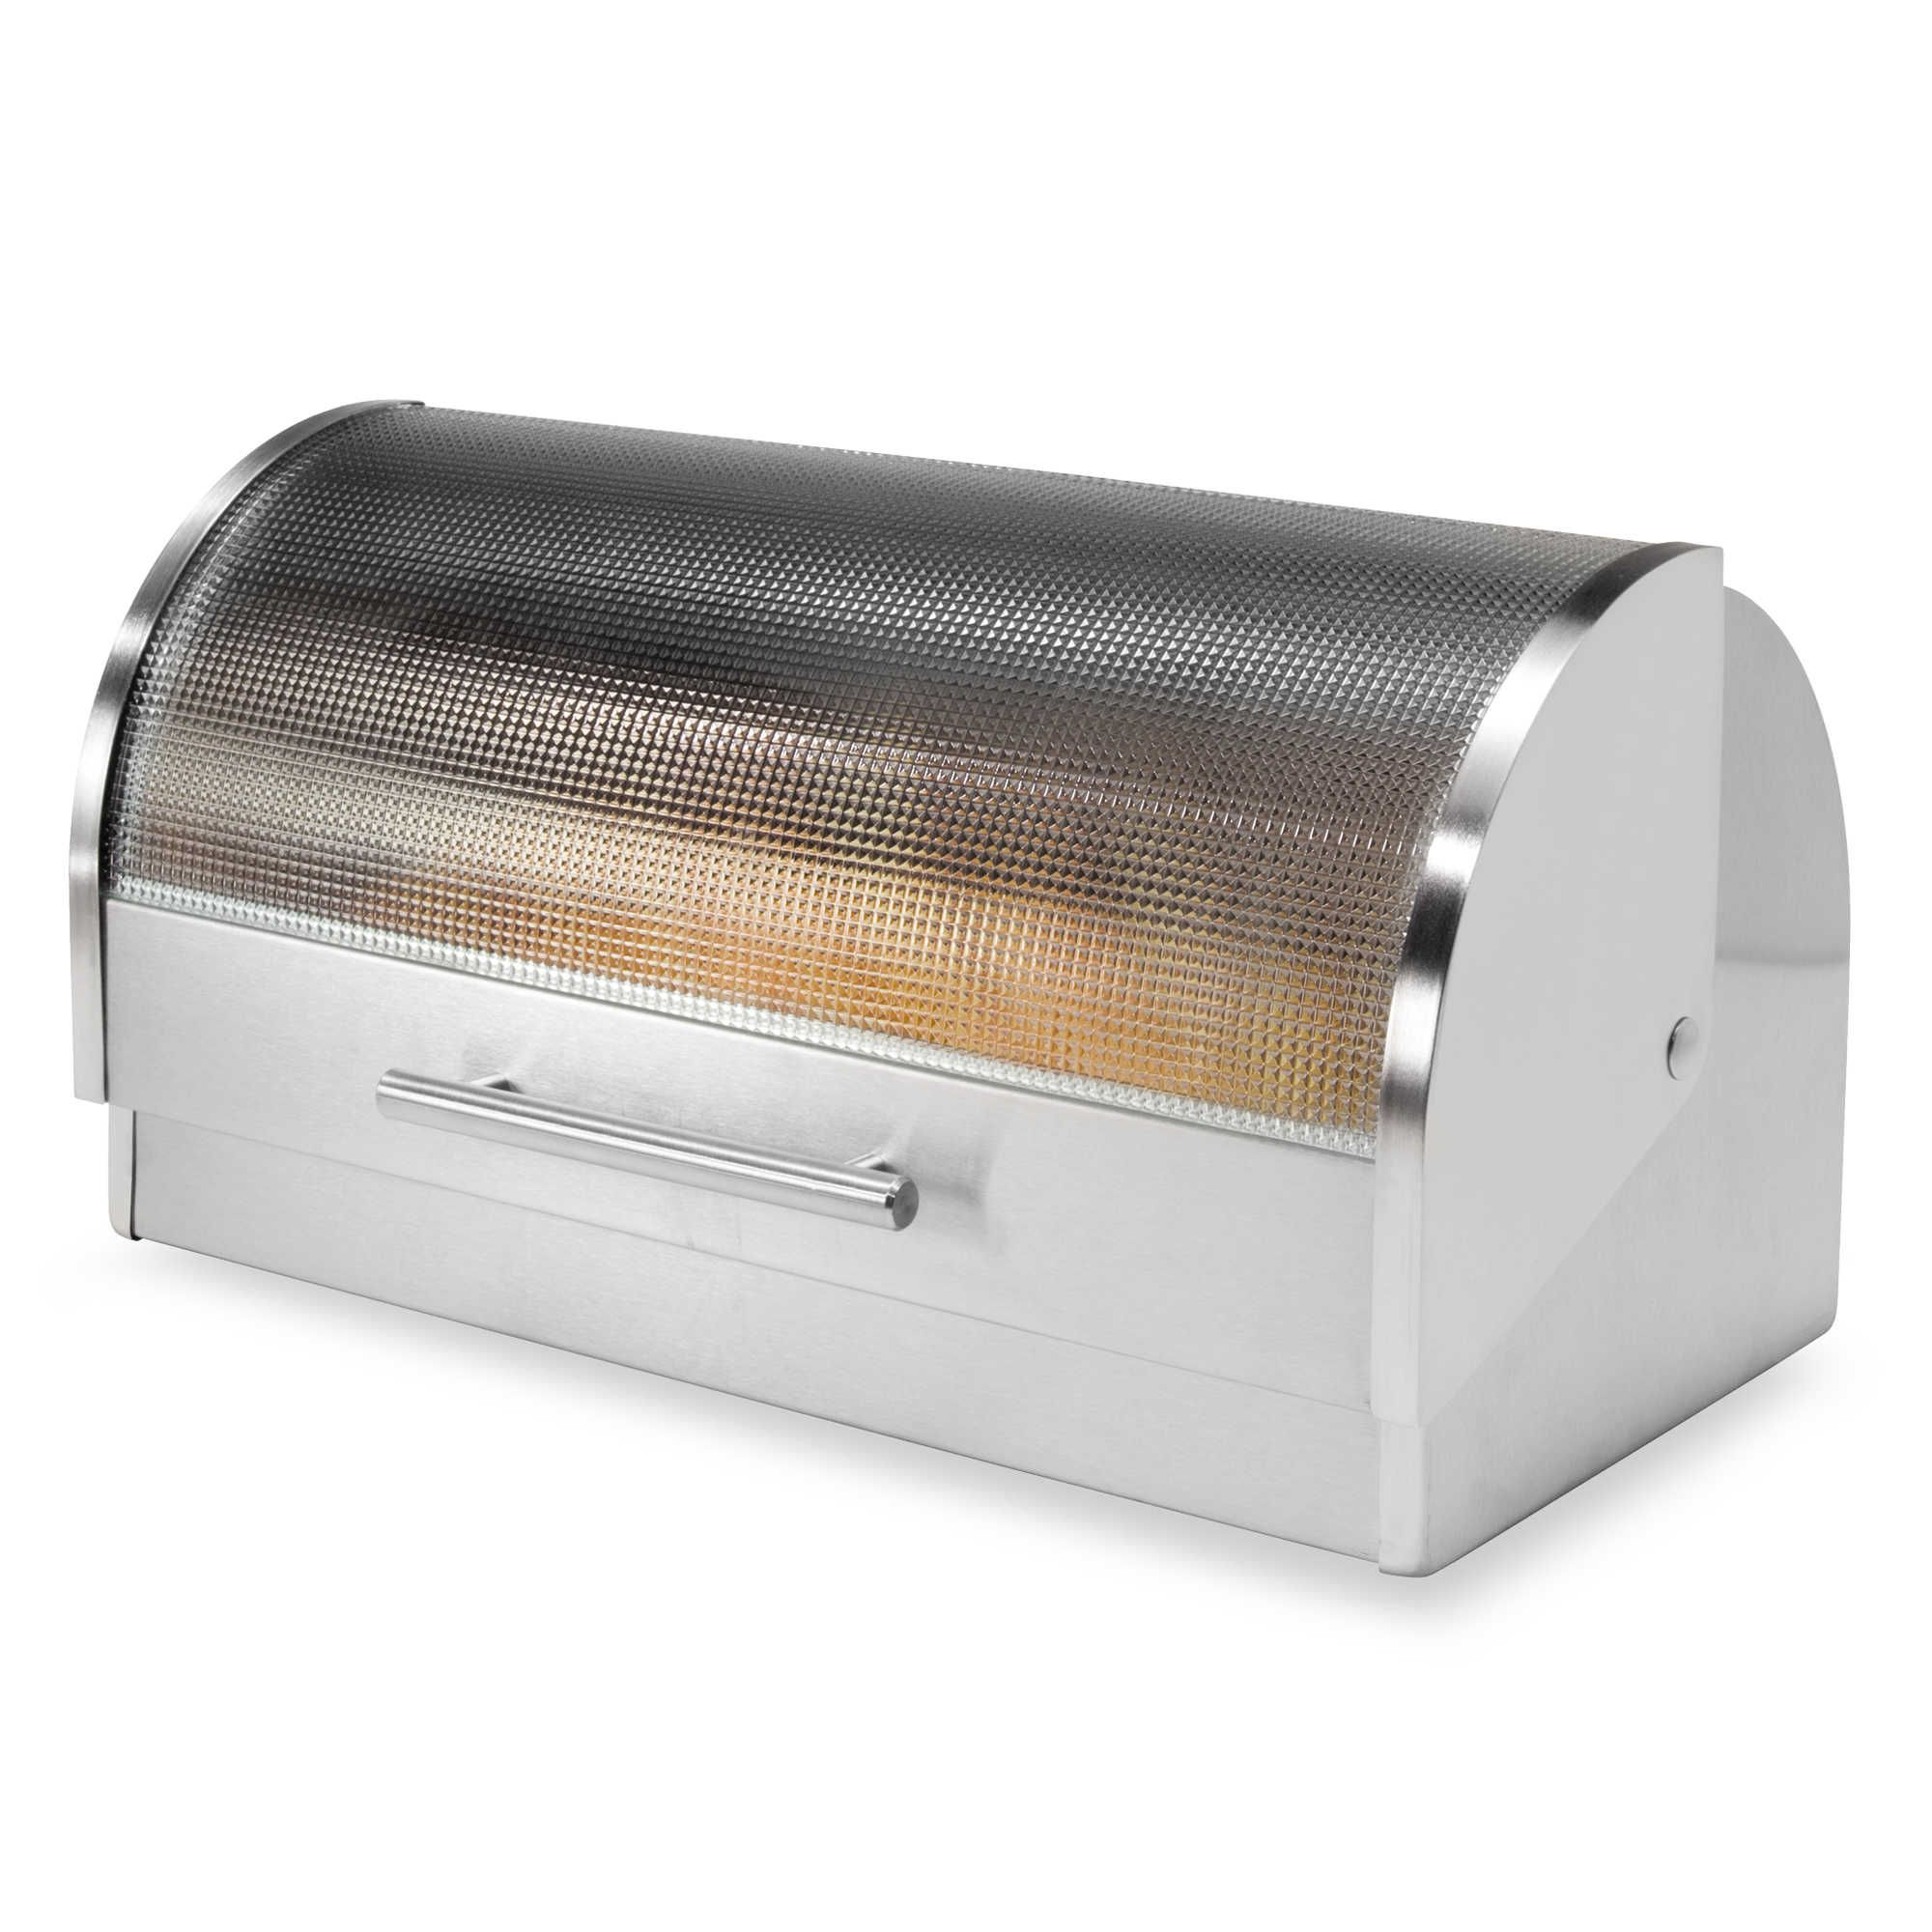 Oggi™ Stainless Steel Glass Roll Top Bread Box Food